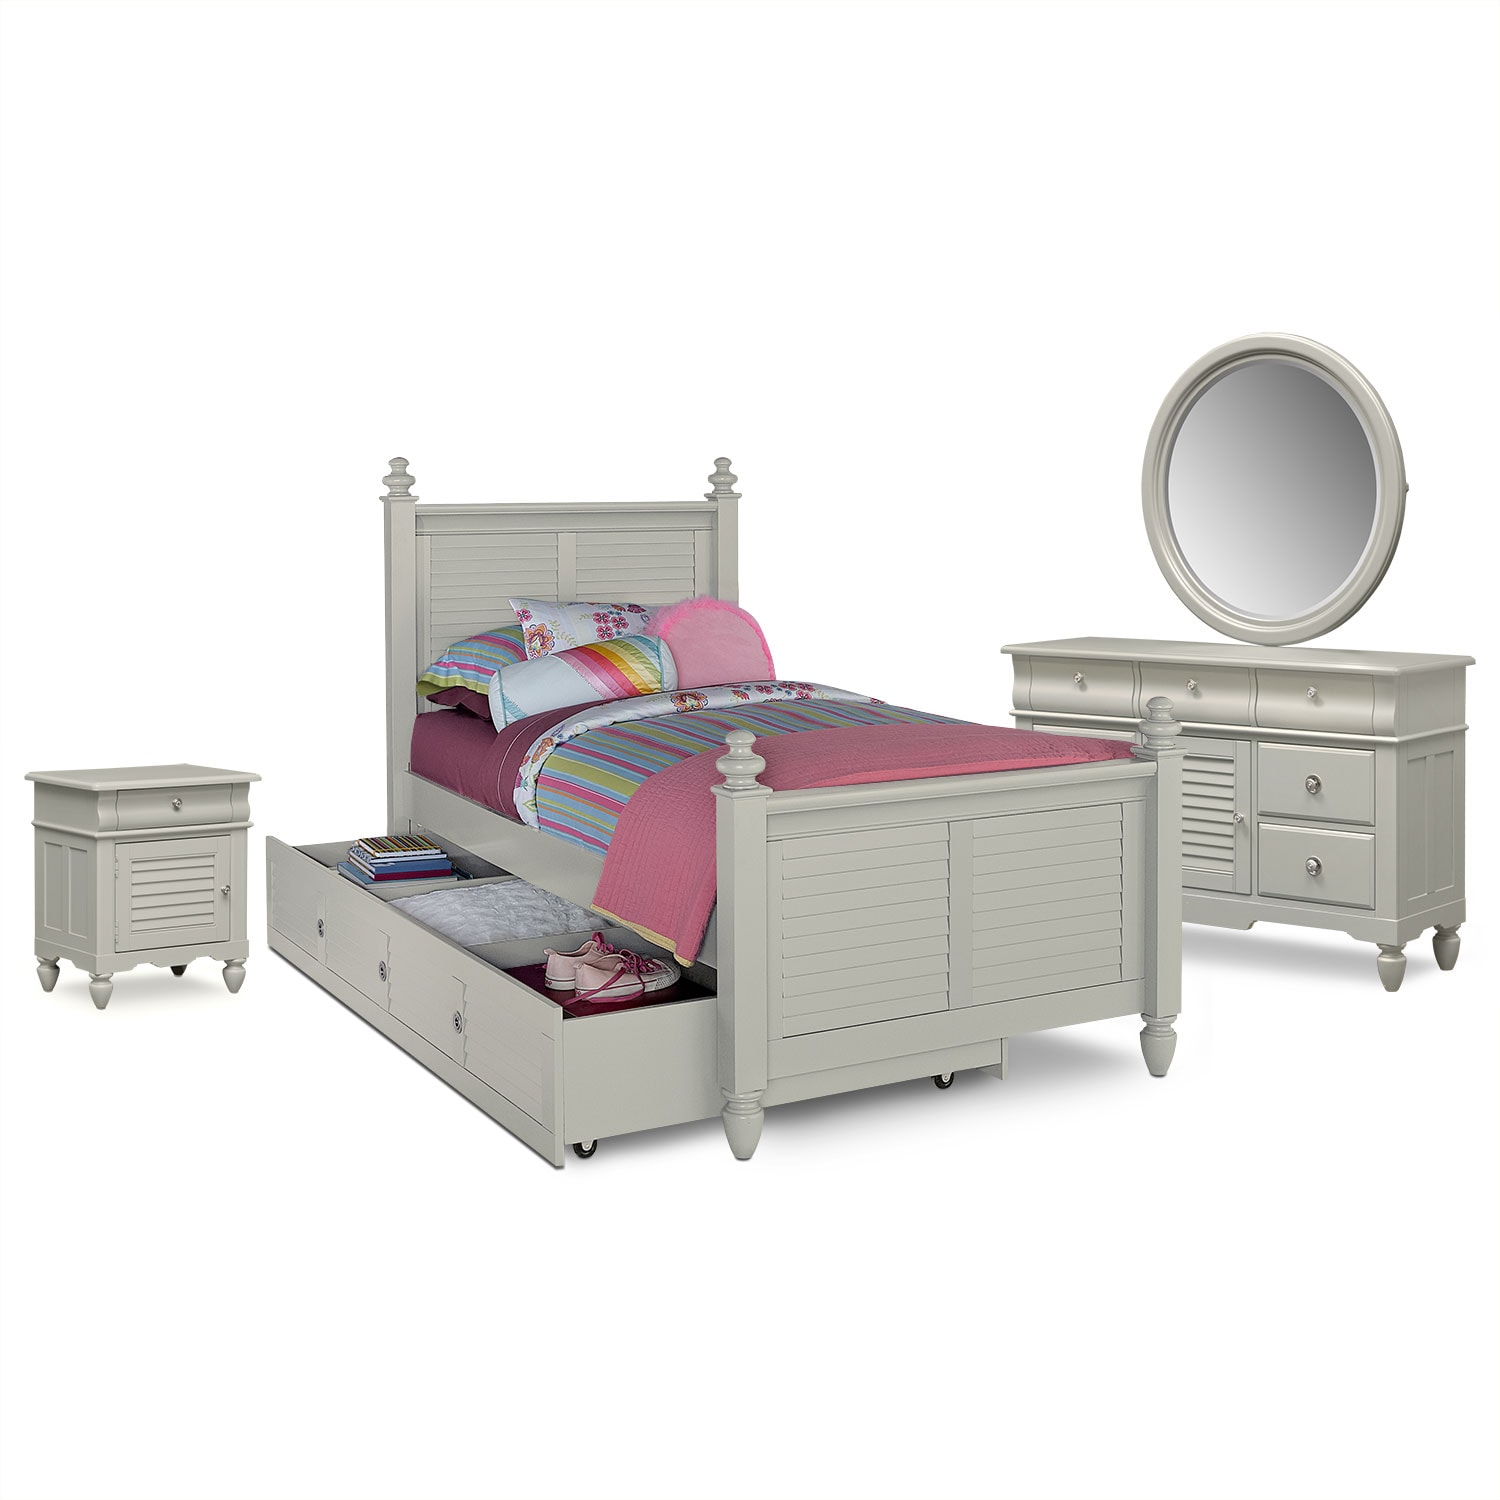 Seaside 7-Piece Twin Bedroom Set with Trundle - Gray